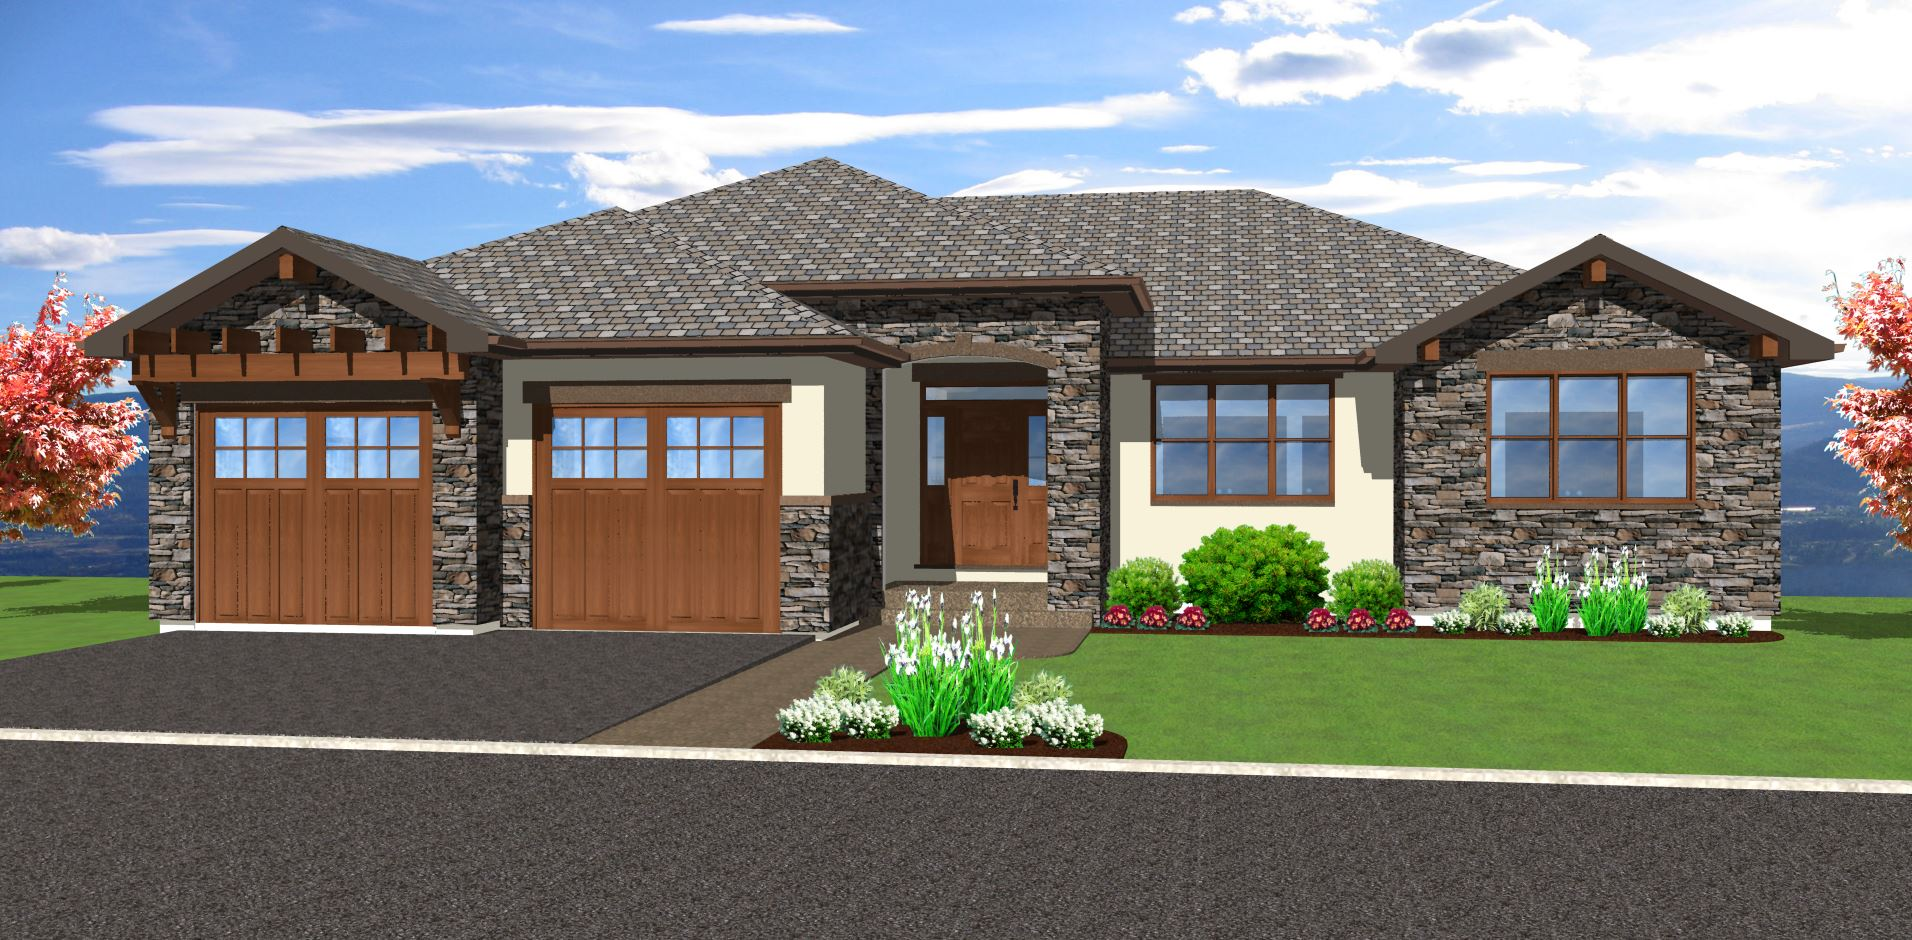 Spacious hillside home with walkout basement 67702mg for Modern ranch plans